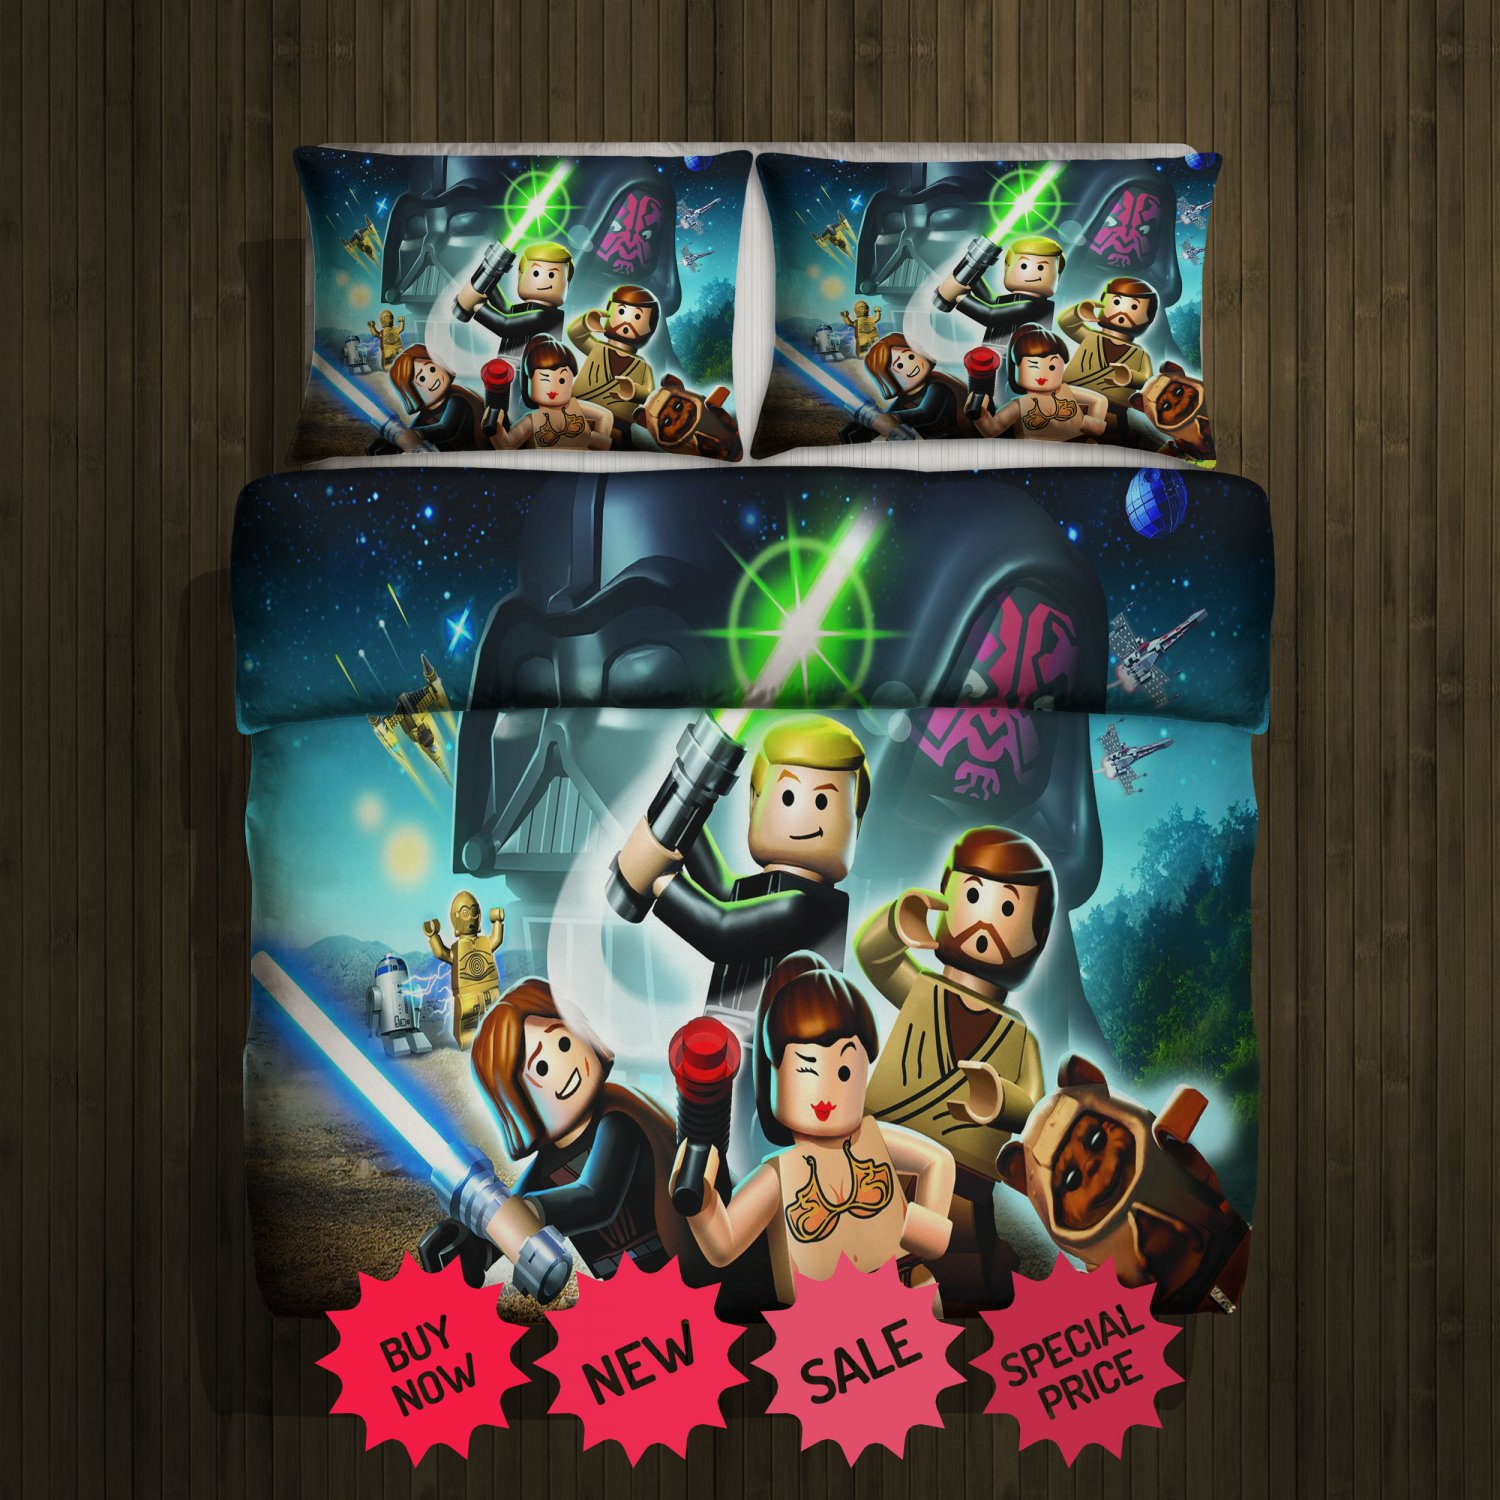 Lego Star Wars The Force Awakens Blanket Large & 2 Pillow Cases #94238497,94238498(2)